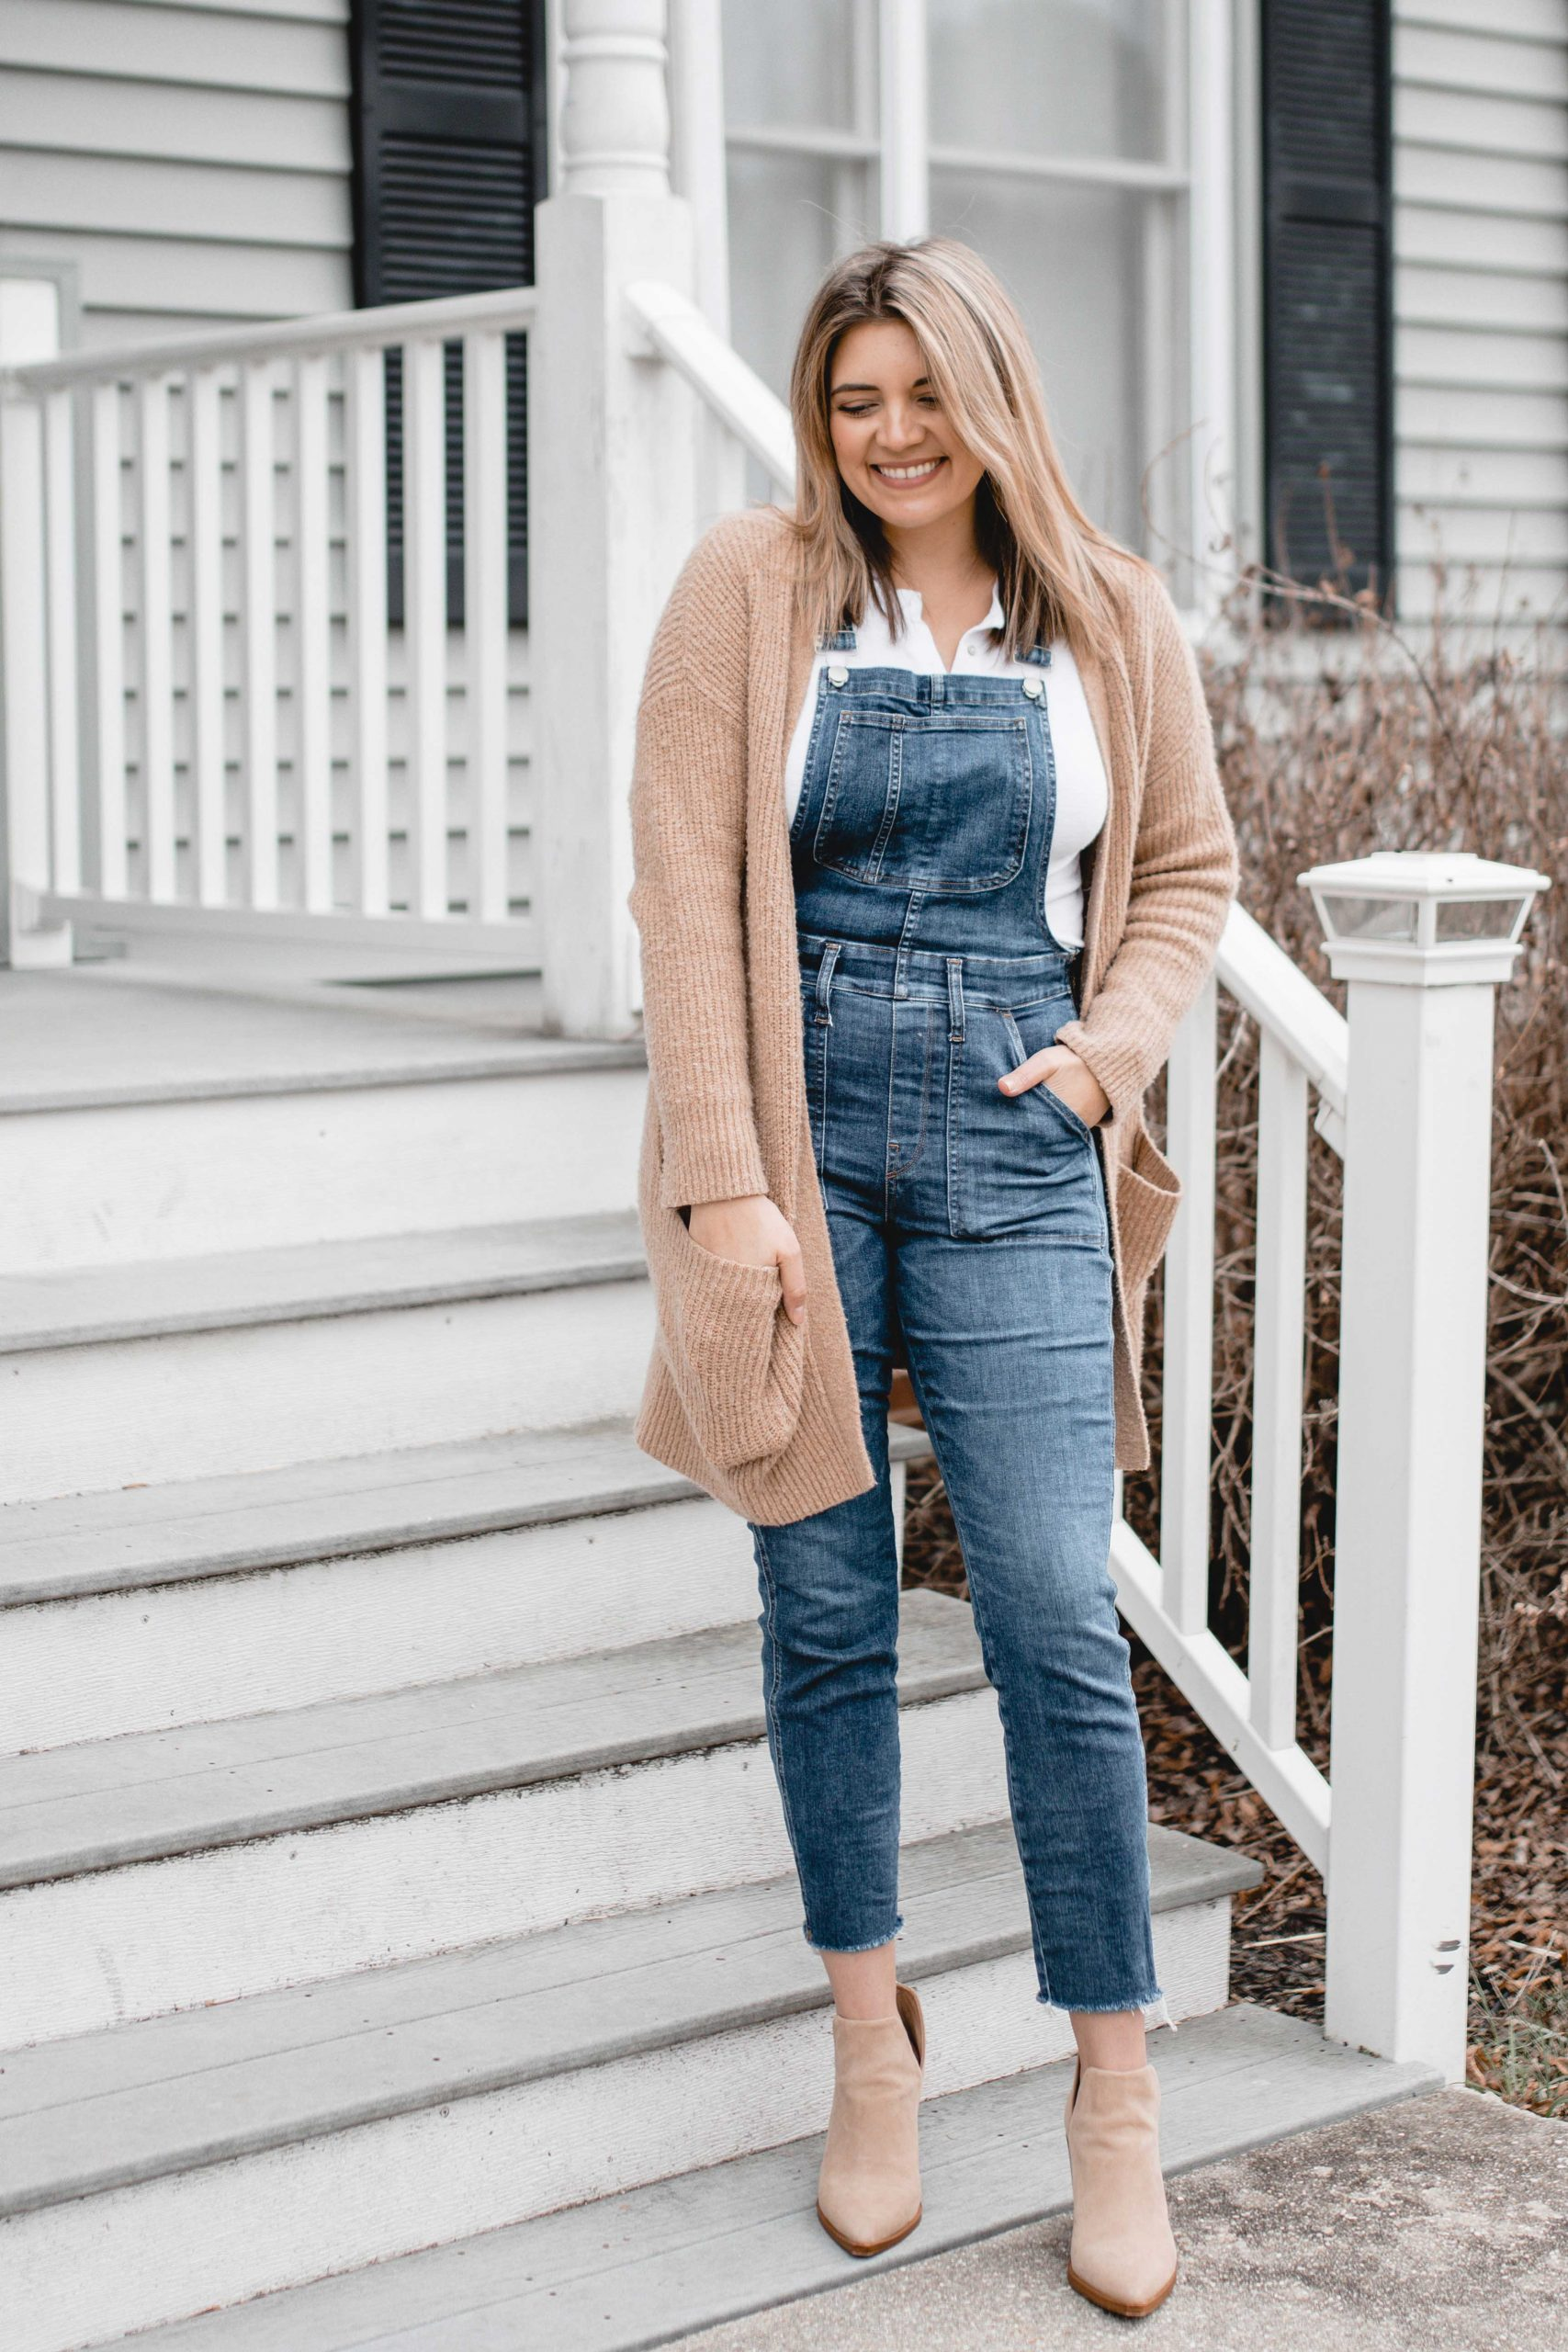 Virginia blogger, Lauren Dix, shares six overalls outfit for winter!